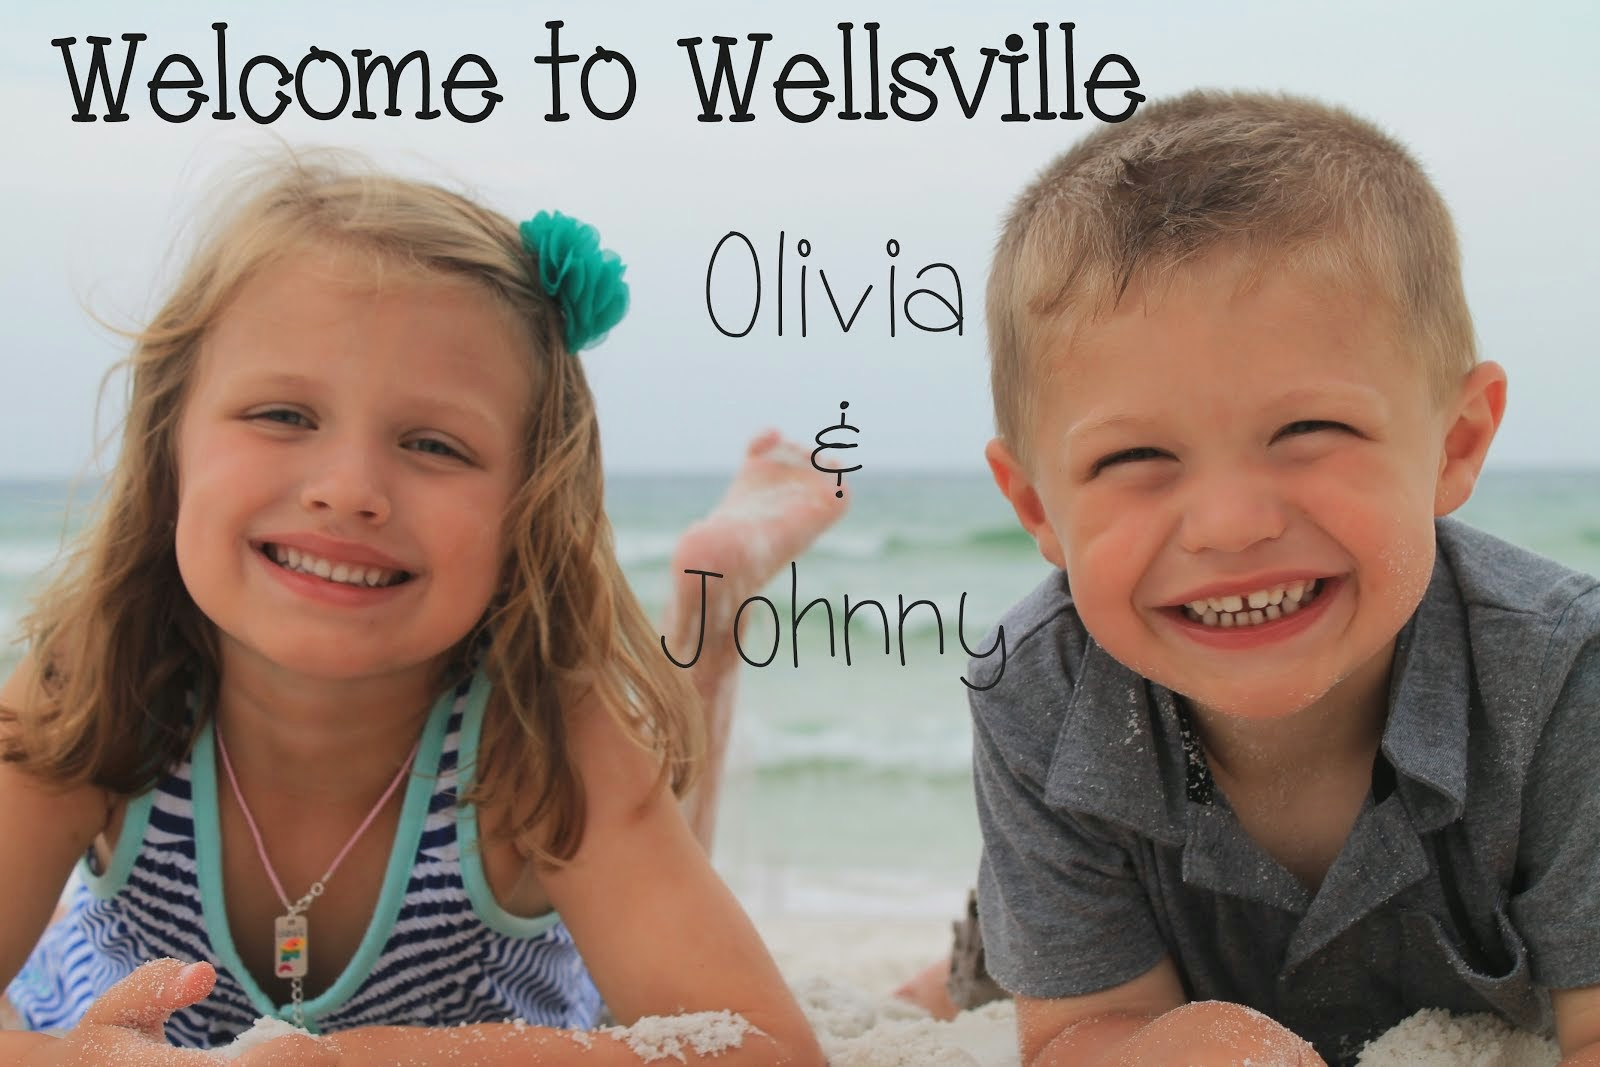 Welcome to Wellsville!